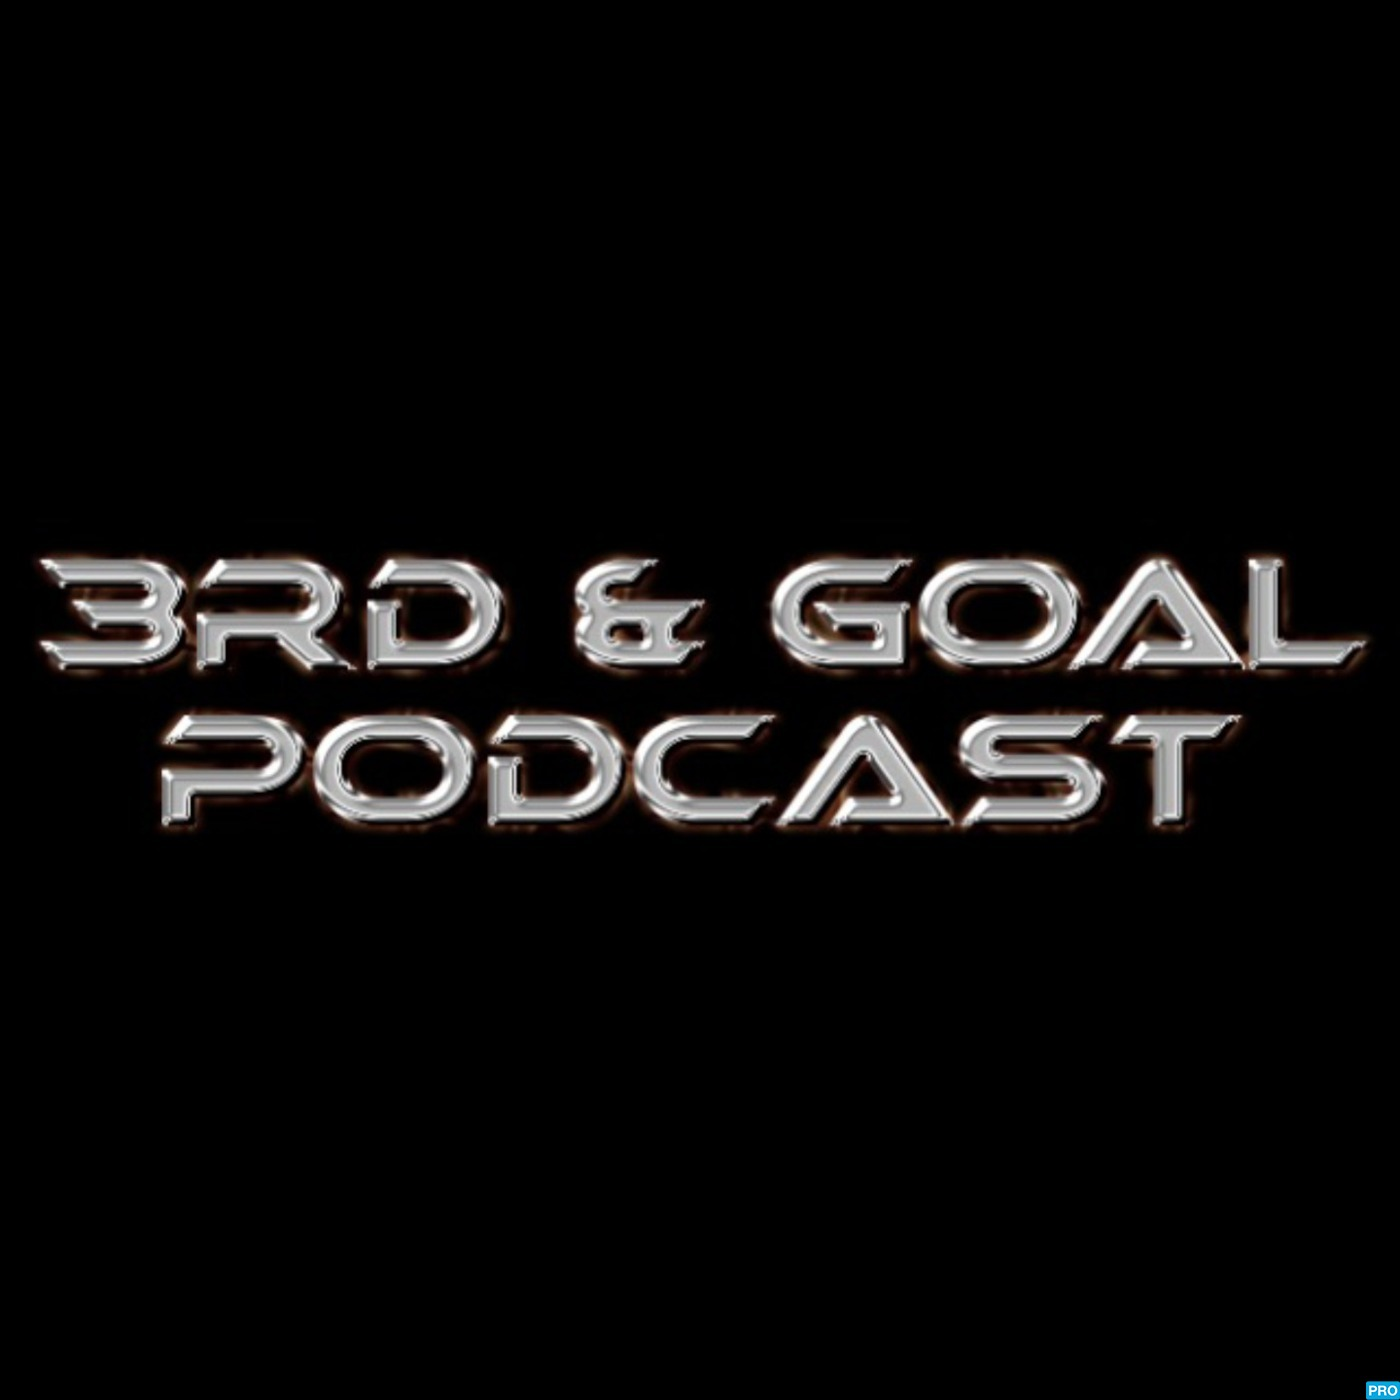 3rd and Goal Podcast